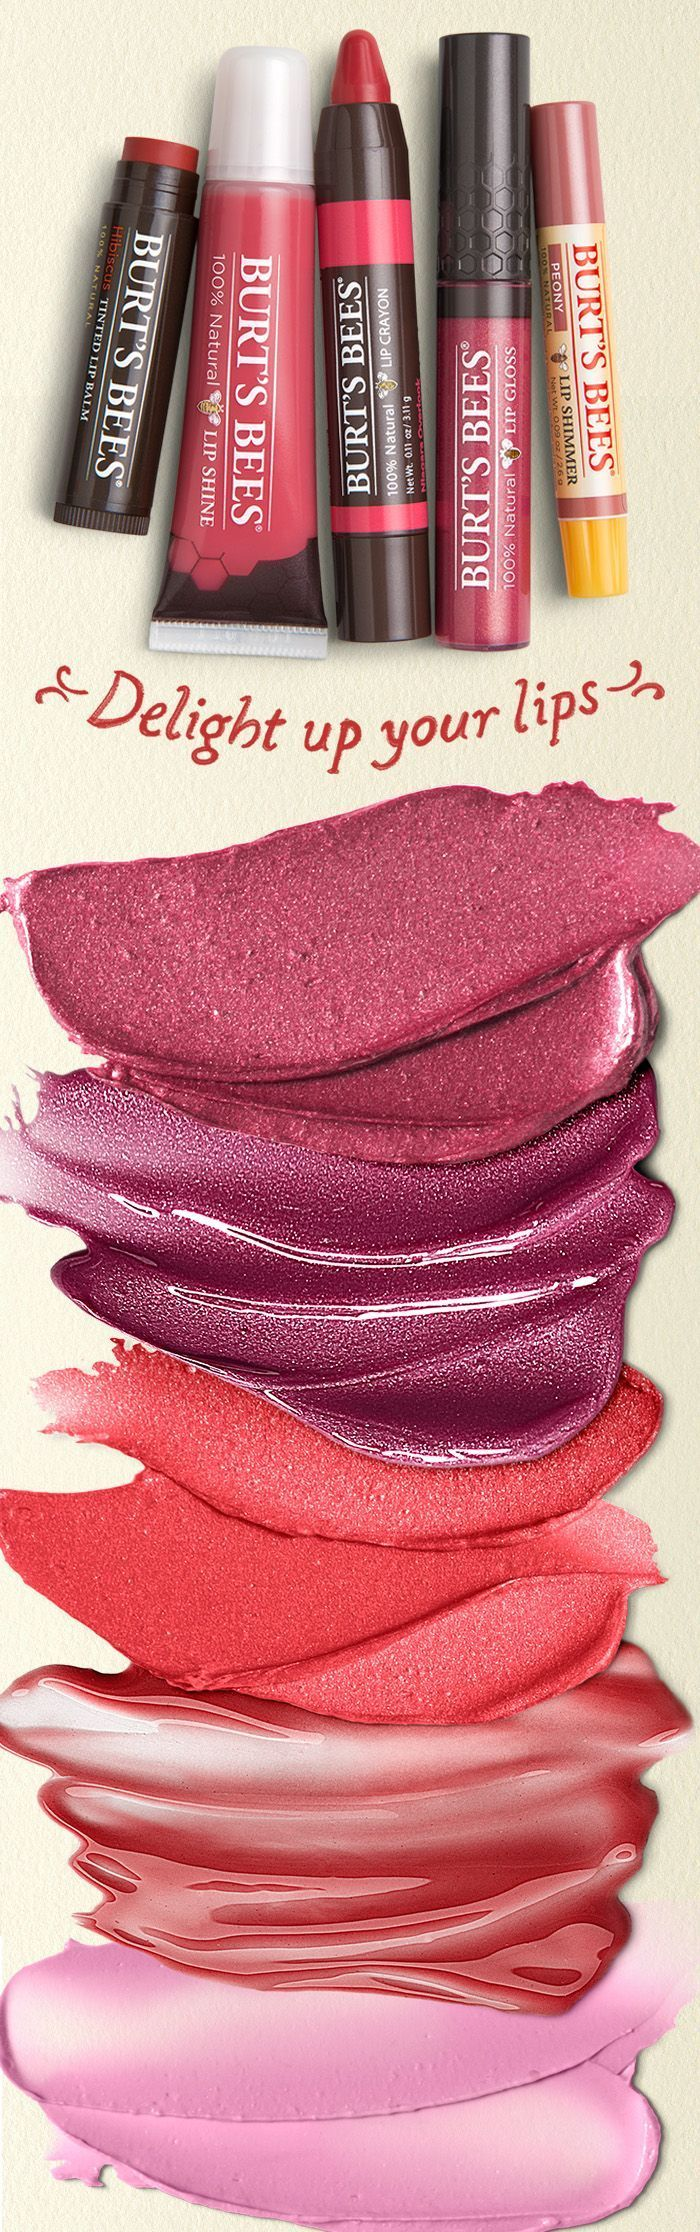 From sheer to shiny, tint to matte, nature is delighting up lips with 5  lines and over 50 perfect shades of pink, red, and neutral lip color for  fair skin, ...